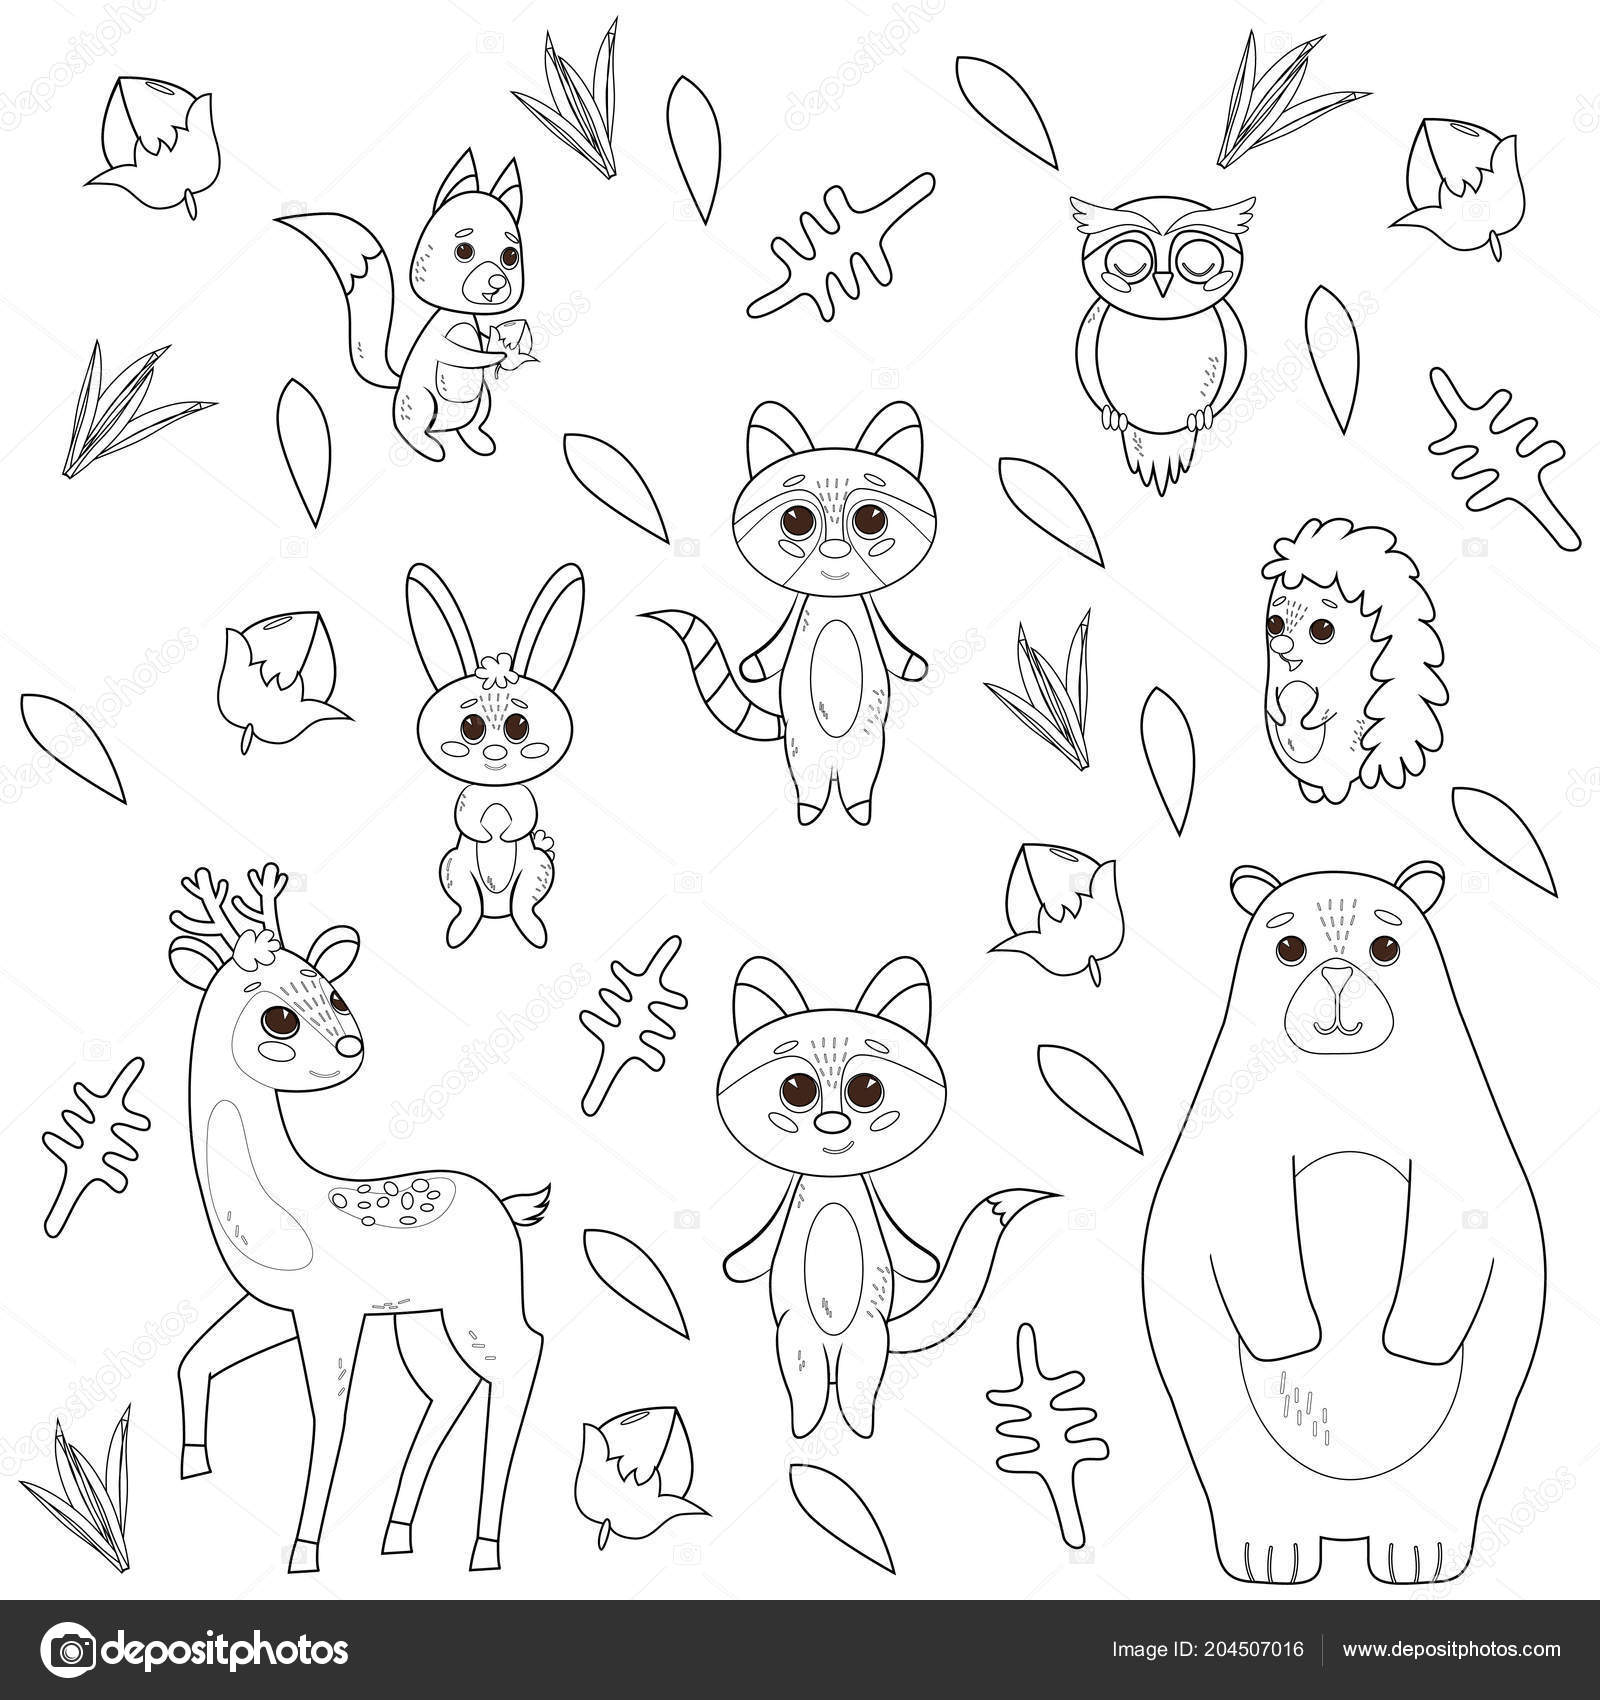 Coloring Book With Cute Forest Animals On The Floral Abstract